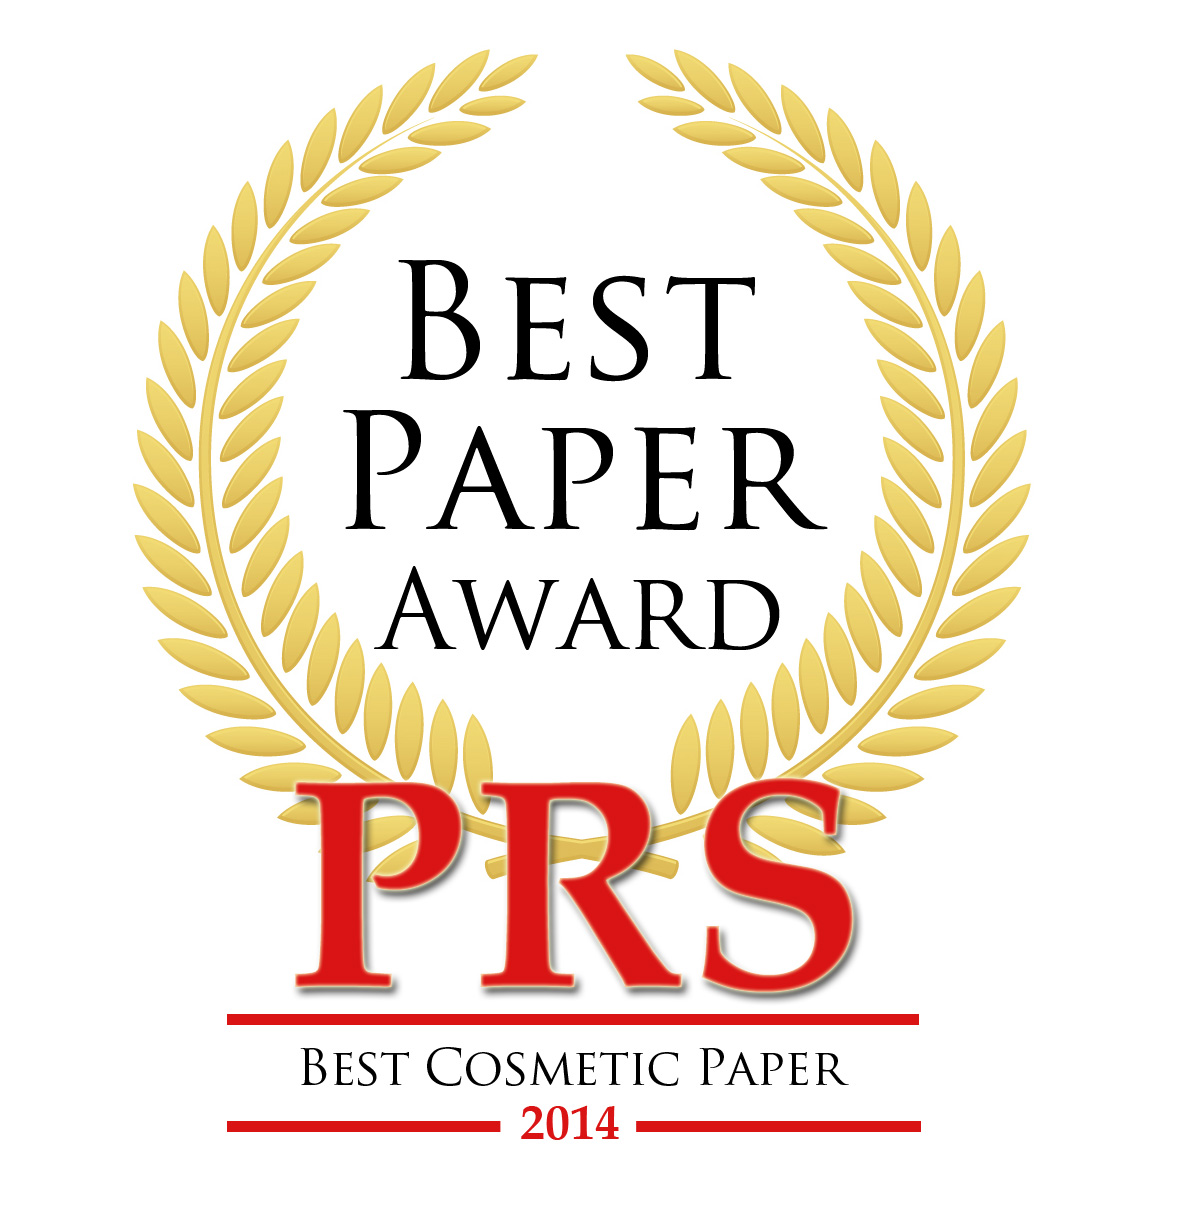 thesis papers on plastic surgery Read this essay on plastic surgery come browse our large digital warehouse of free sample essays get the knowledge you need in order to pass your classes and more.